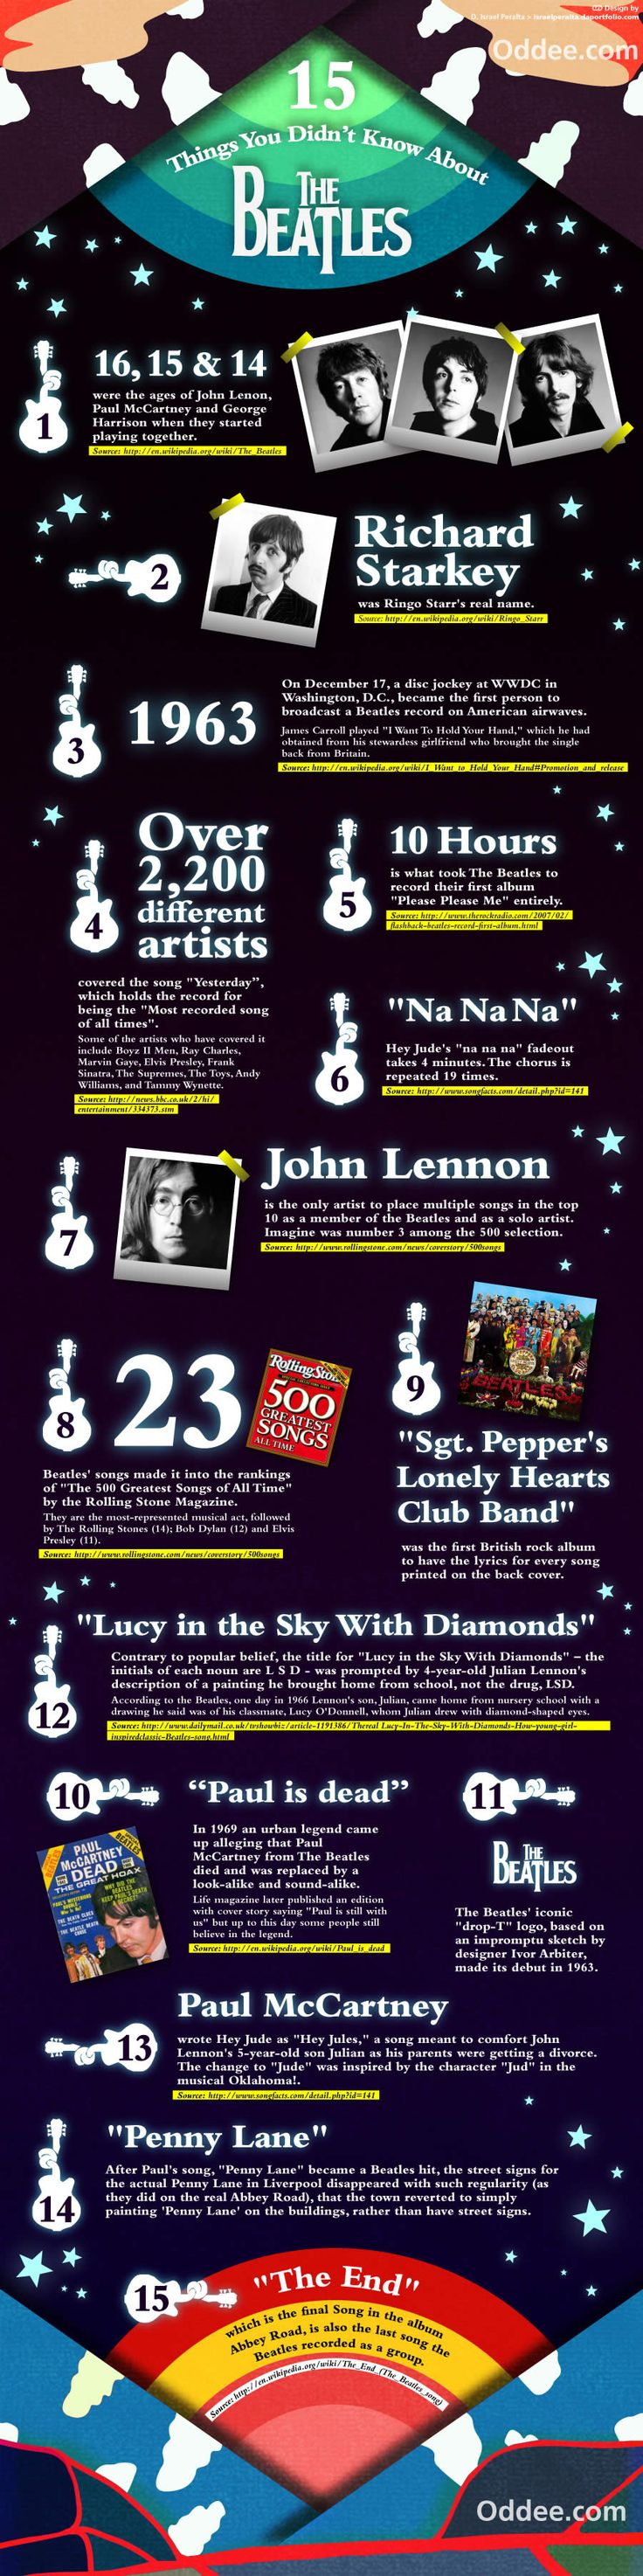 531 best The Beatles images on Pinterest